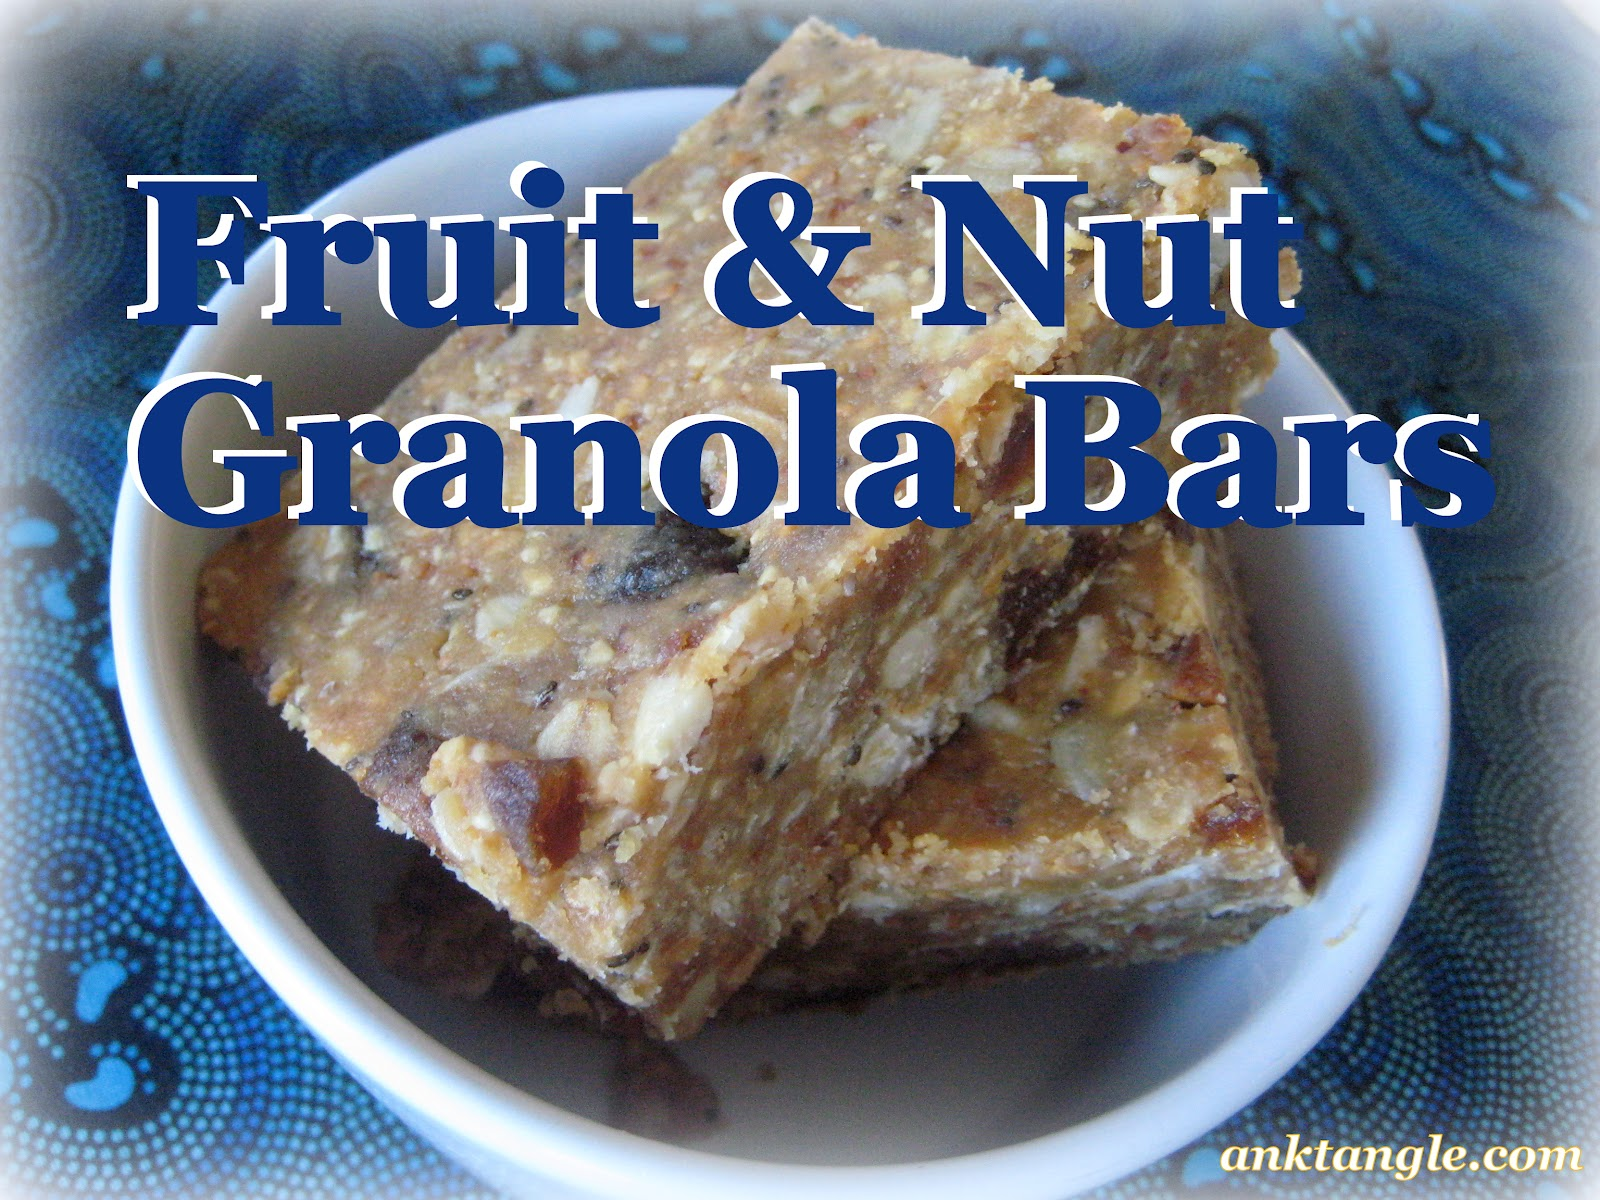 Anktangle: Homemade Chewy Fruit & Nut Granola Bars